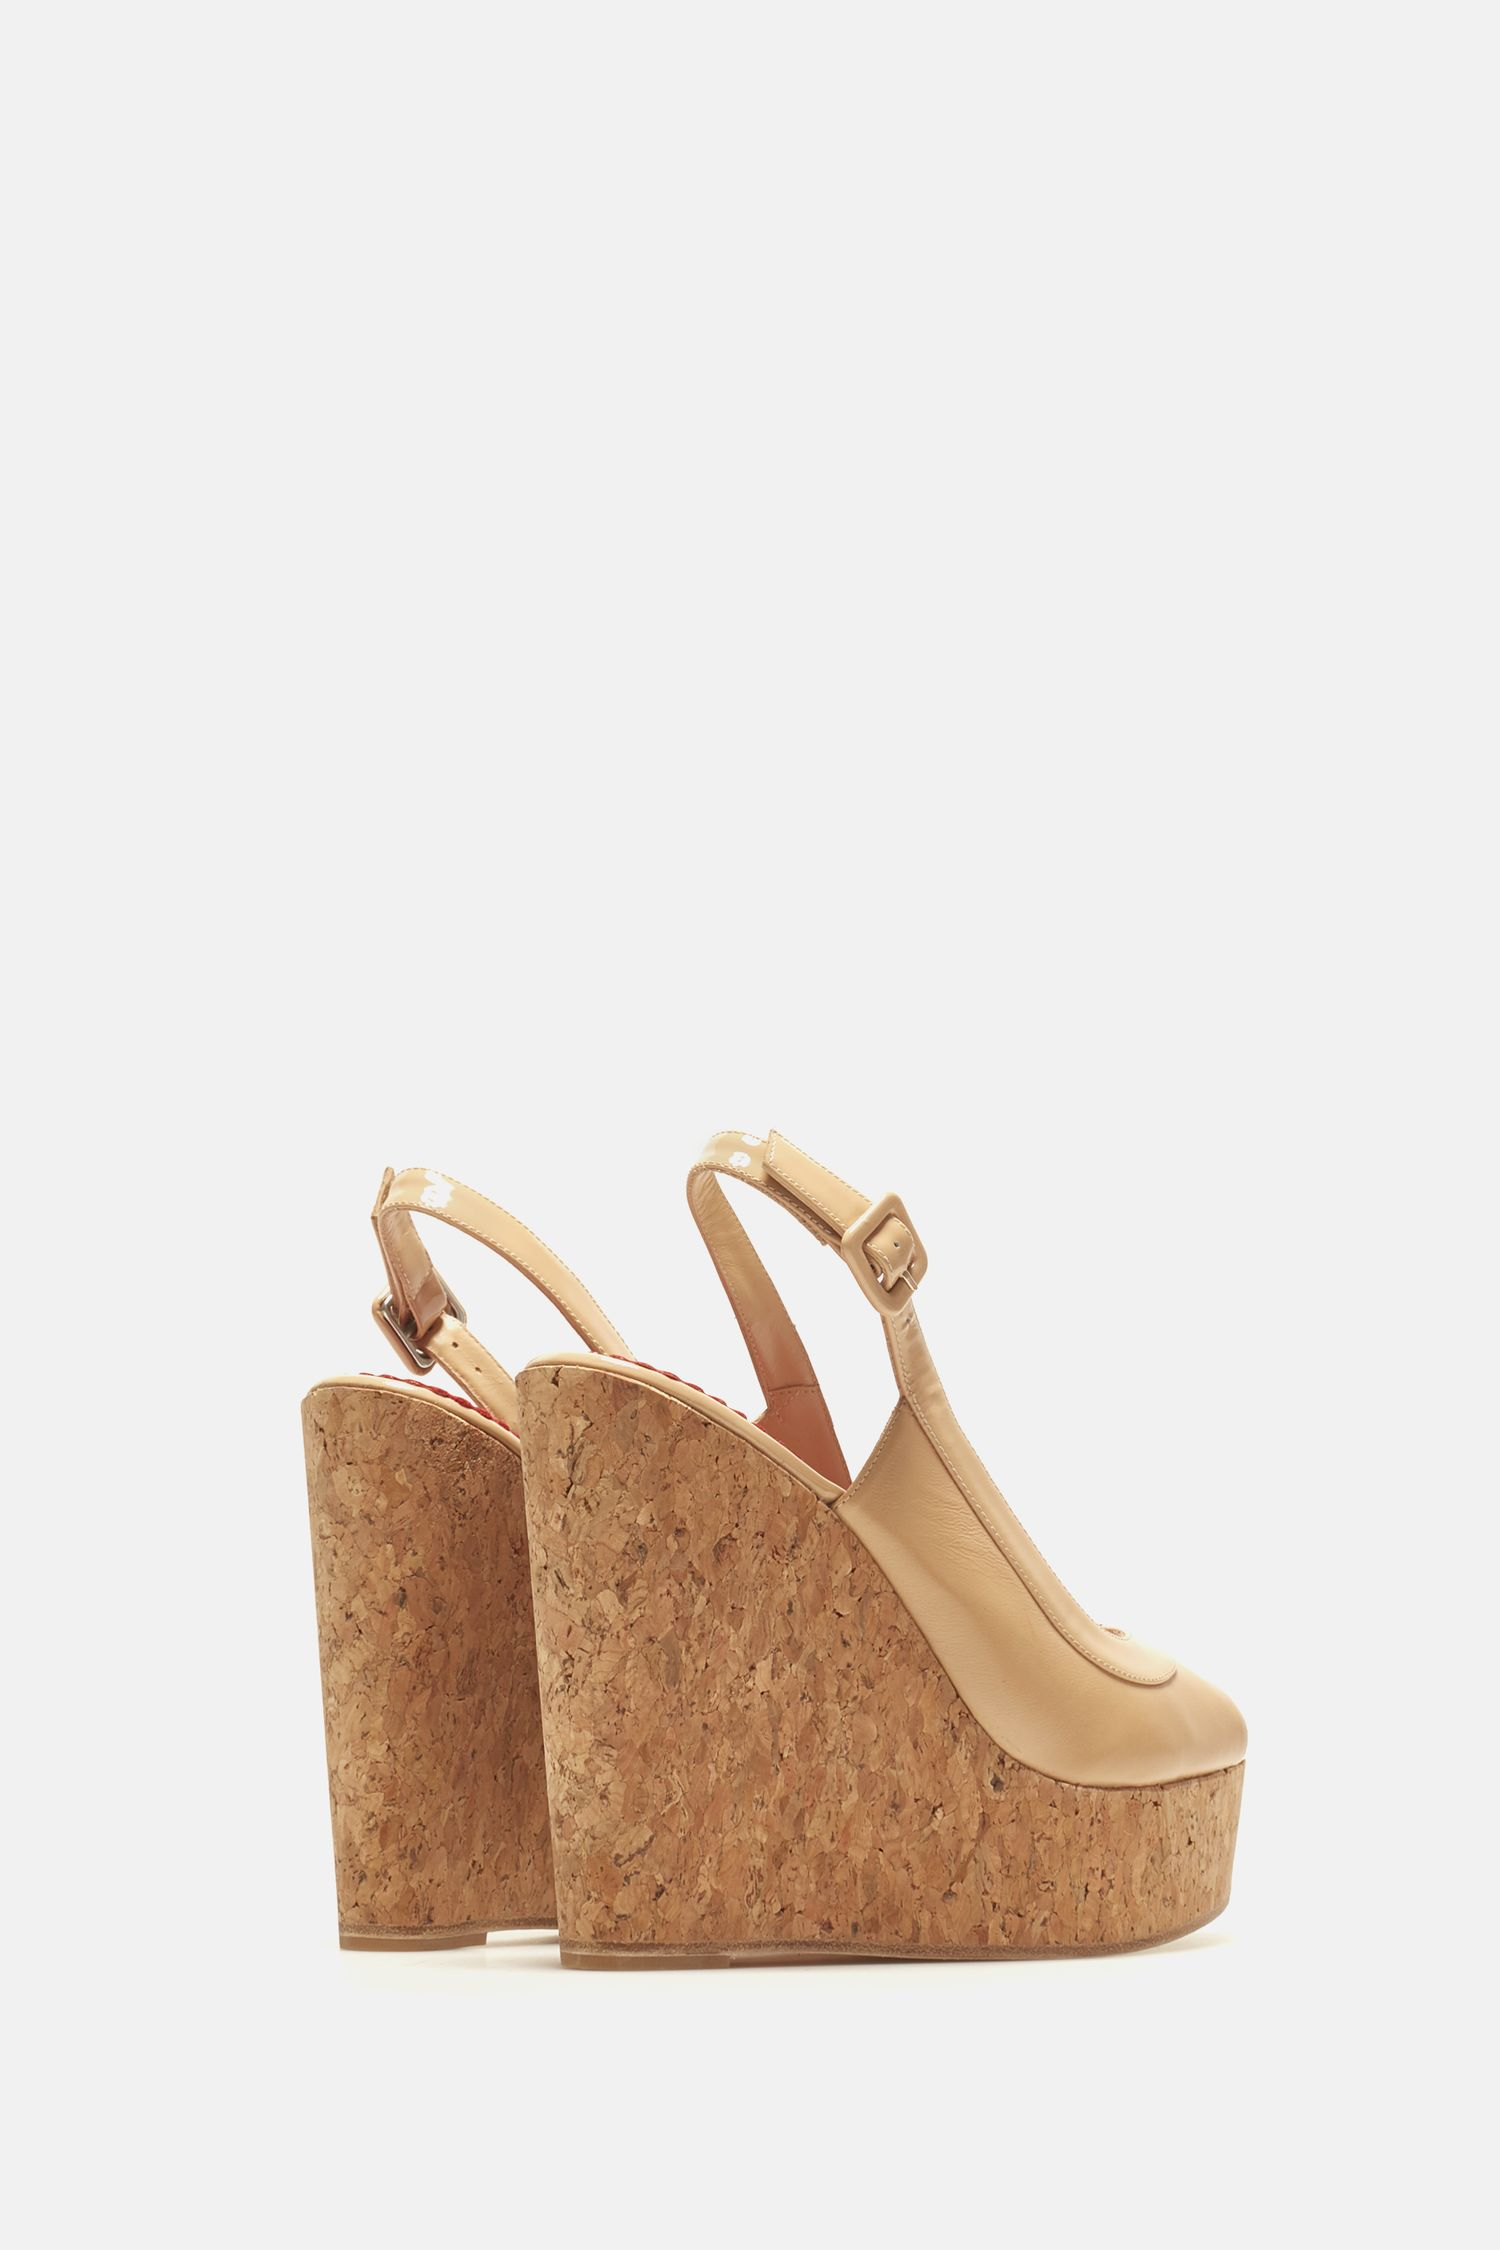 Napa and patent leather wedges